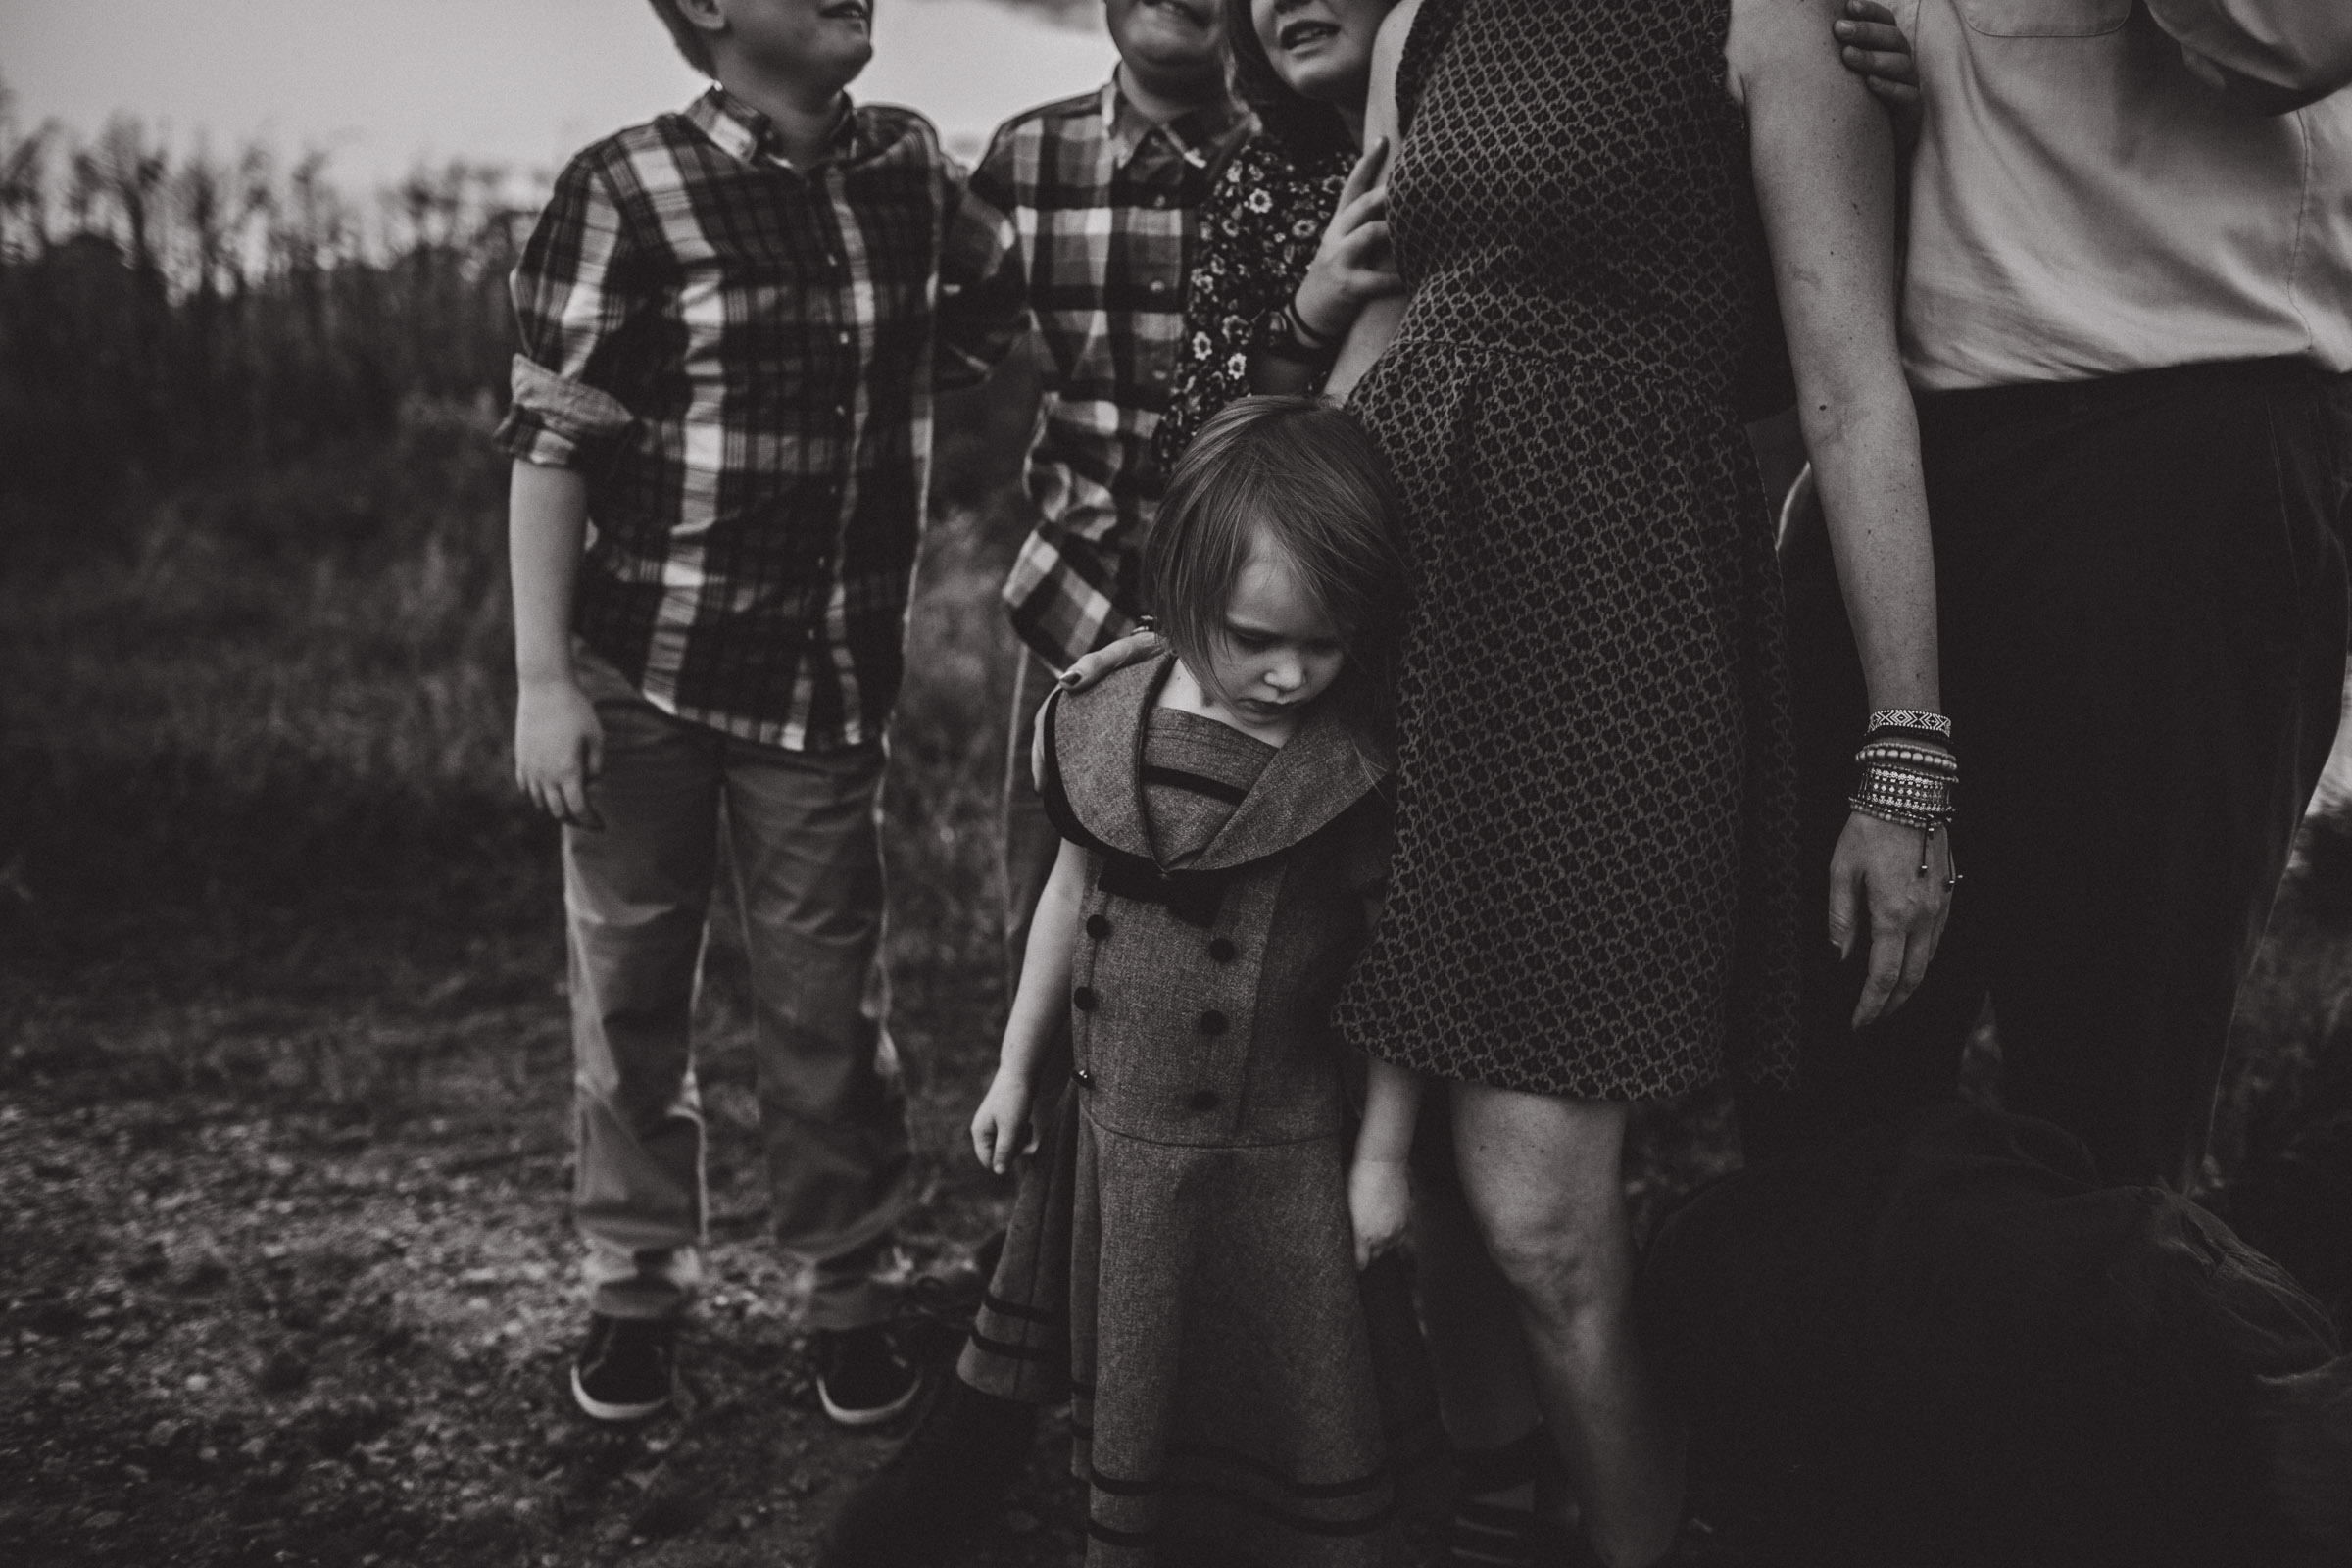 documentary style black and white image of family together